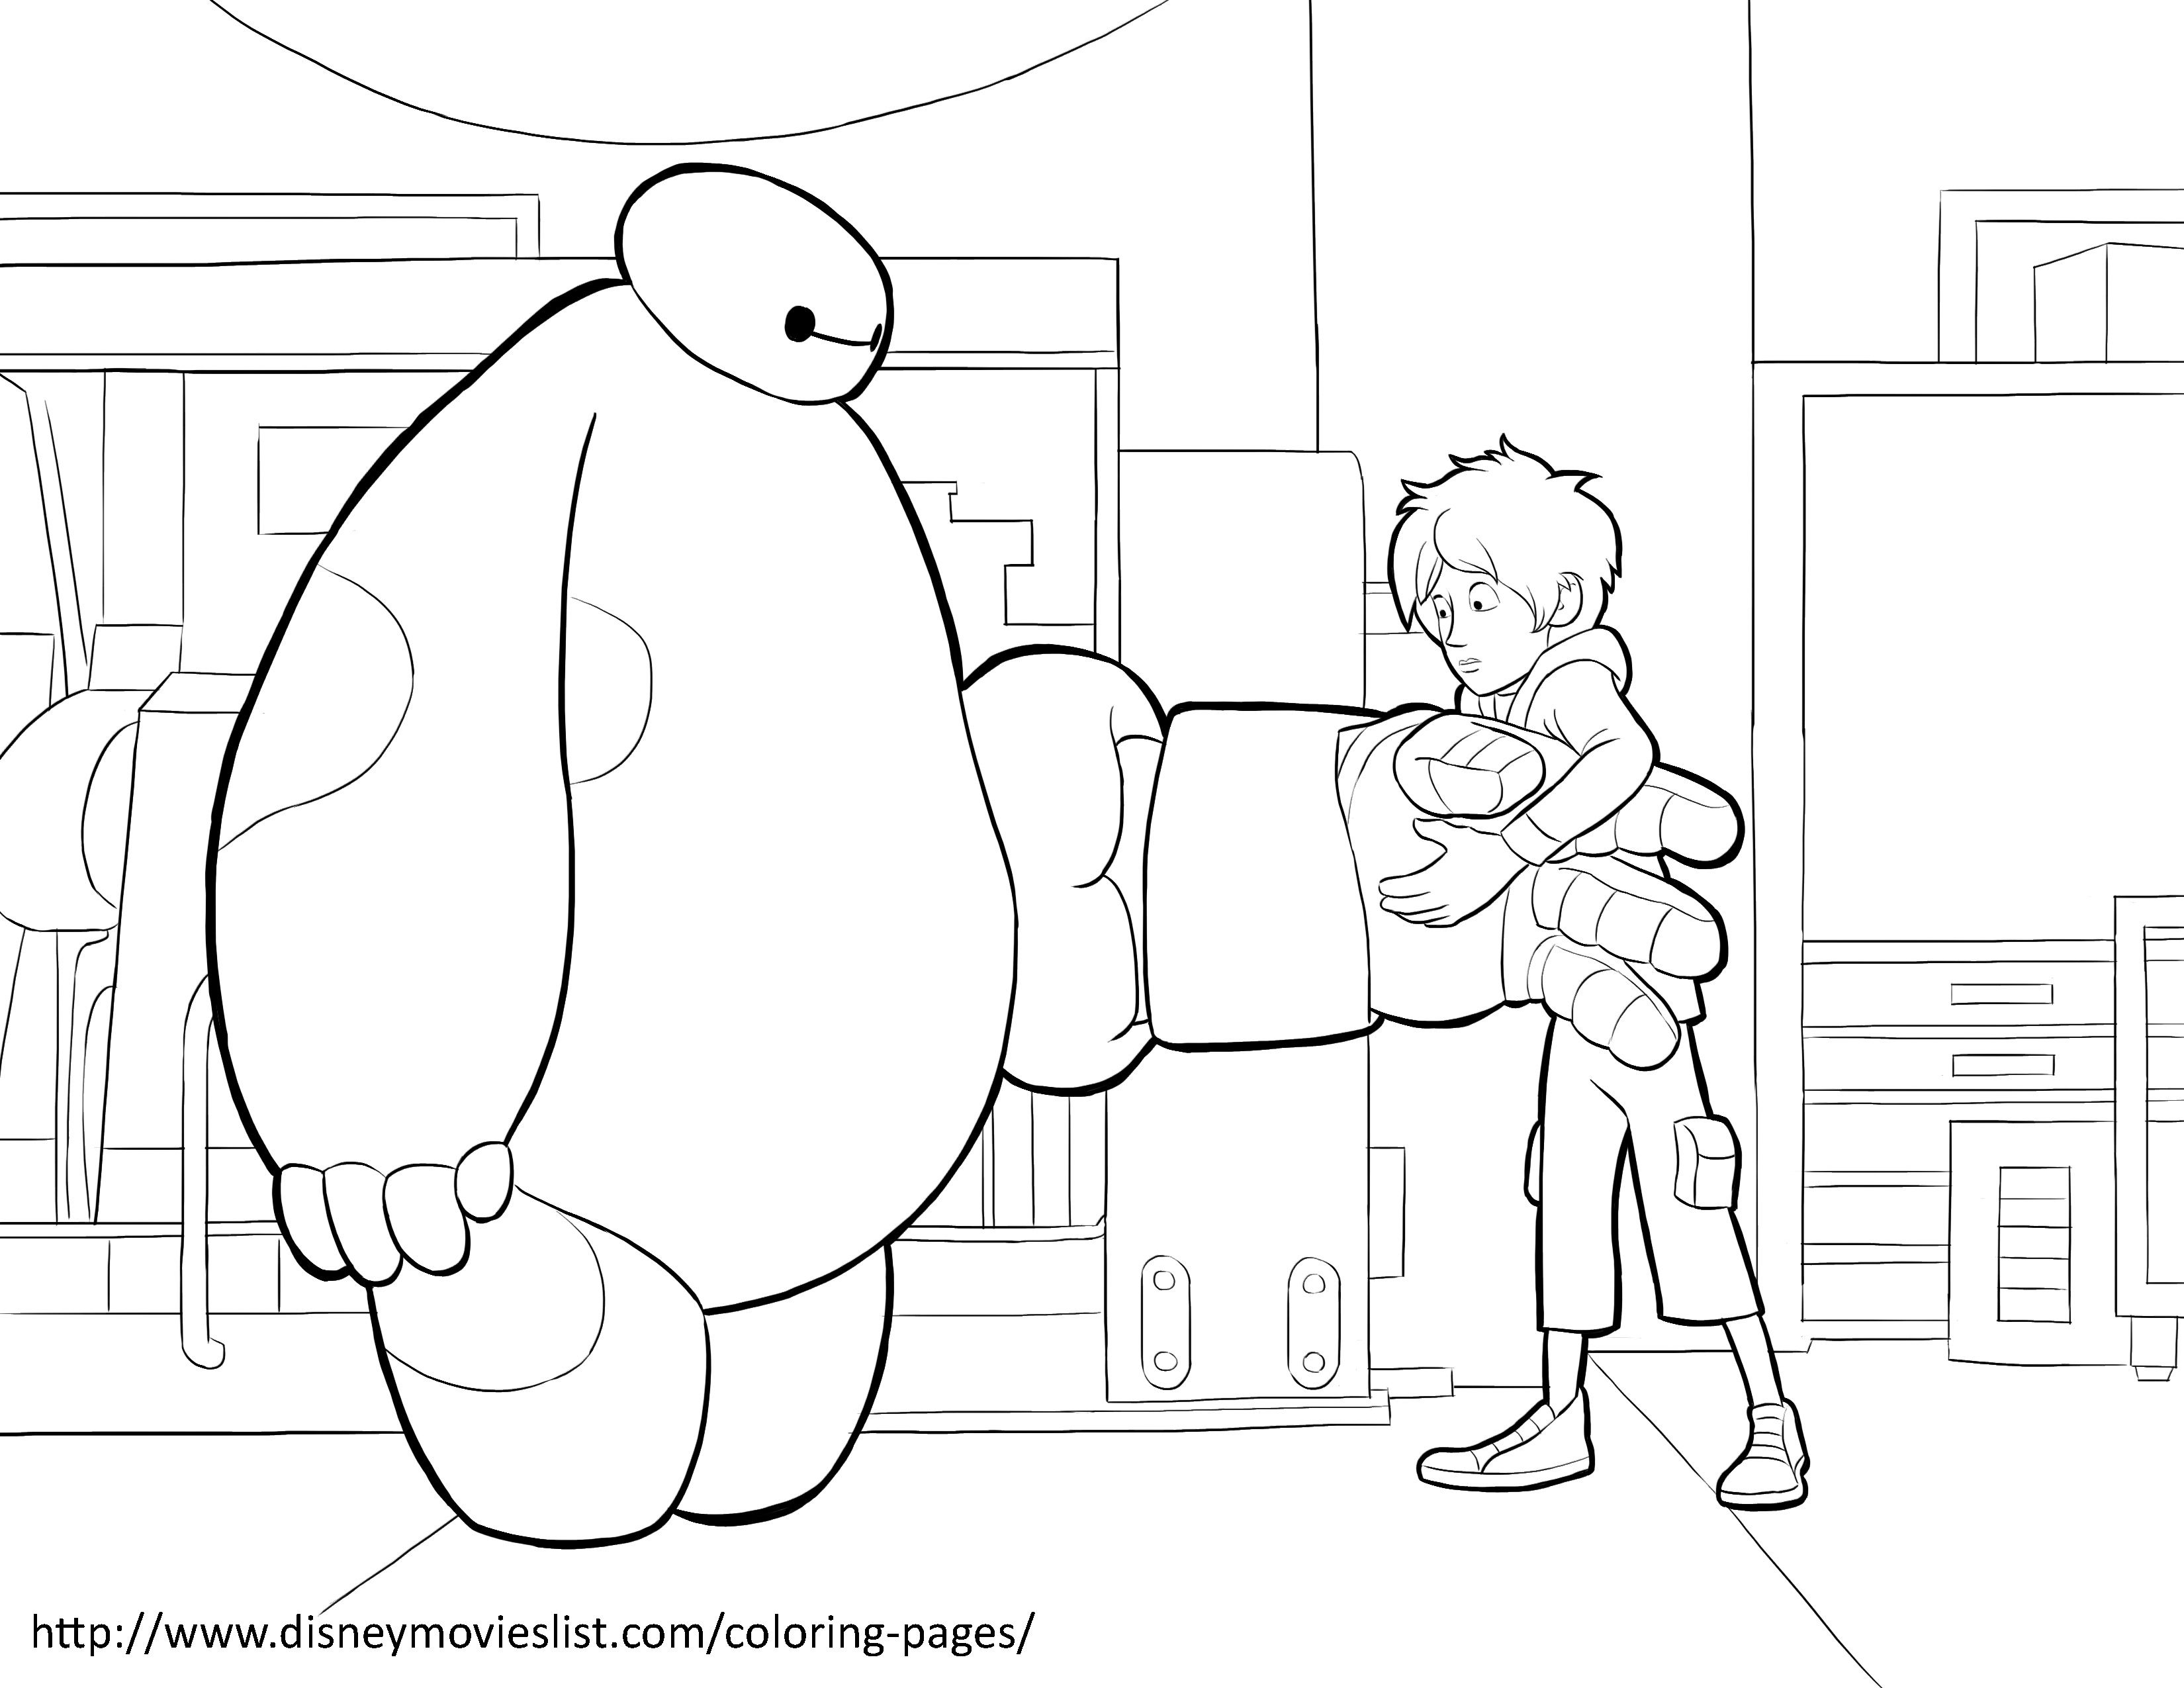 baymax coloring pages for kids - photo#22